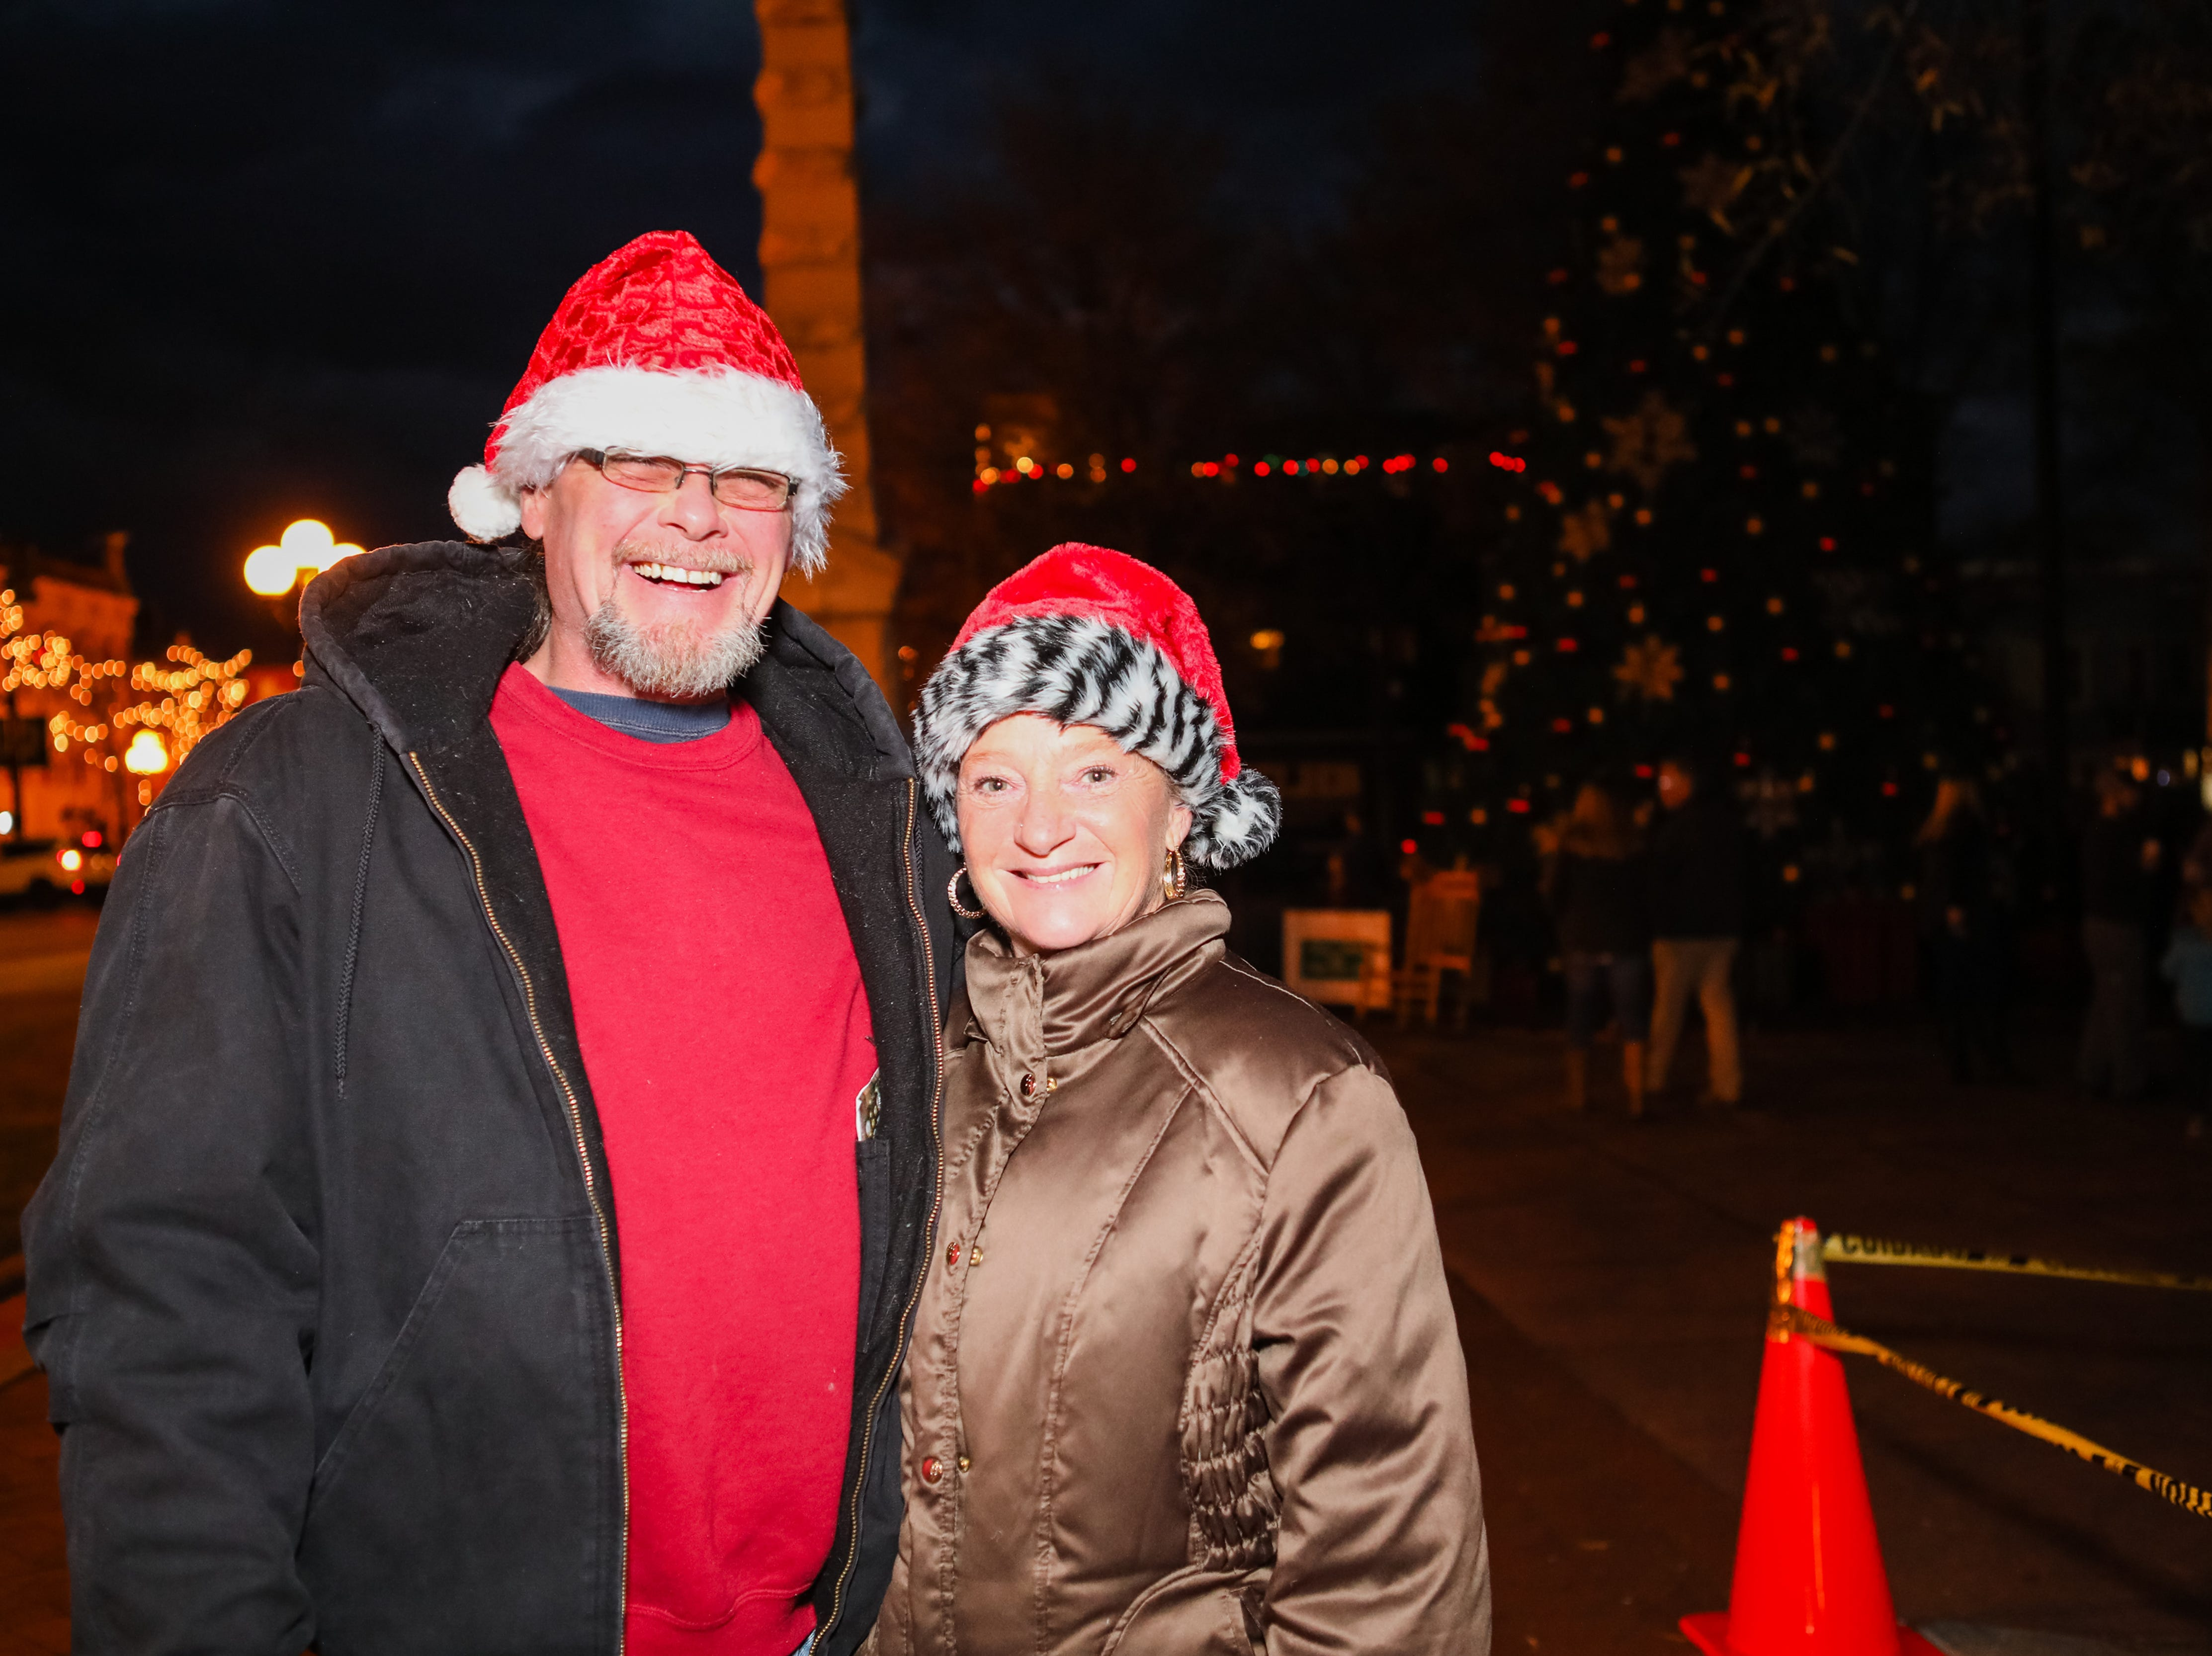 Mike and Patty Sowalsky are all dressed up for the Piedmont Natural Gas Holiday Walk and Christmas Tree Lighting in downtown Anderson